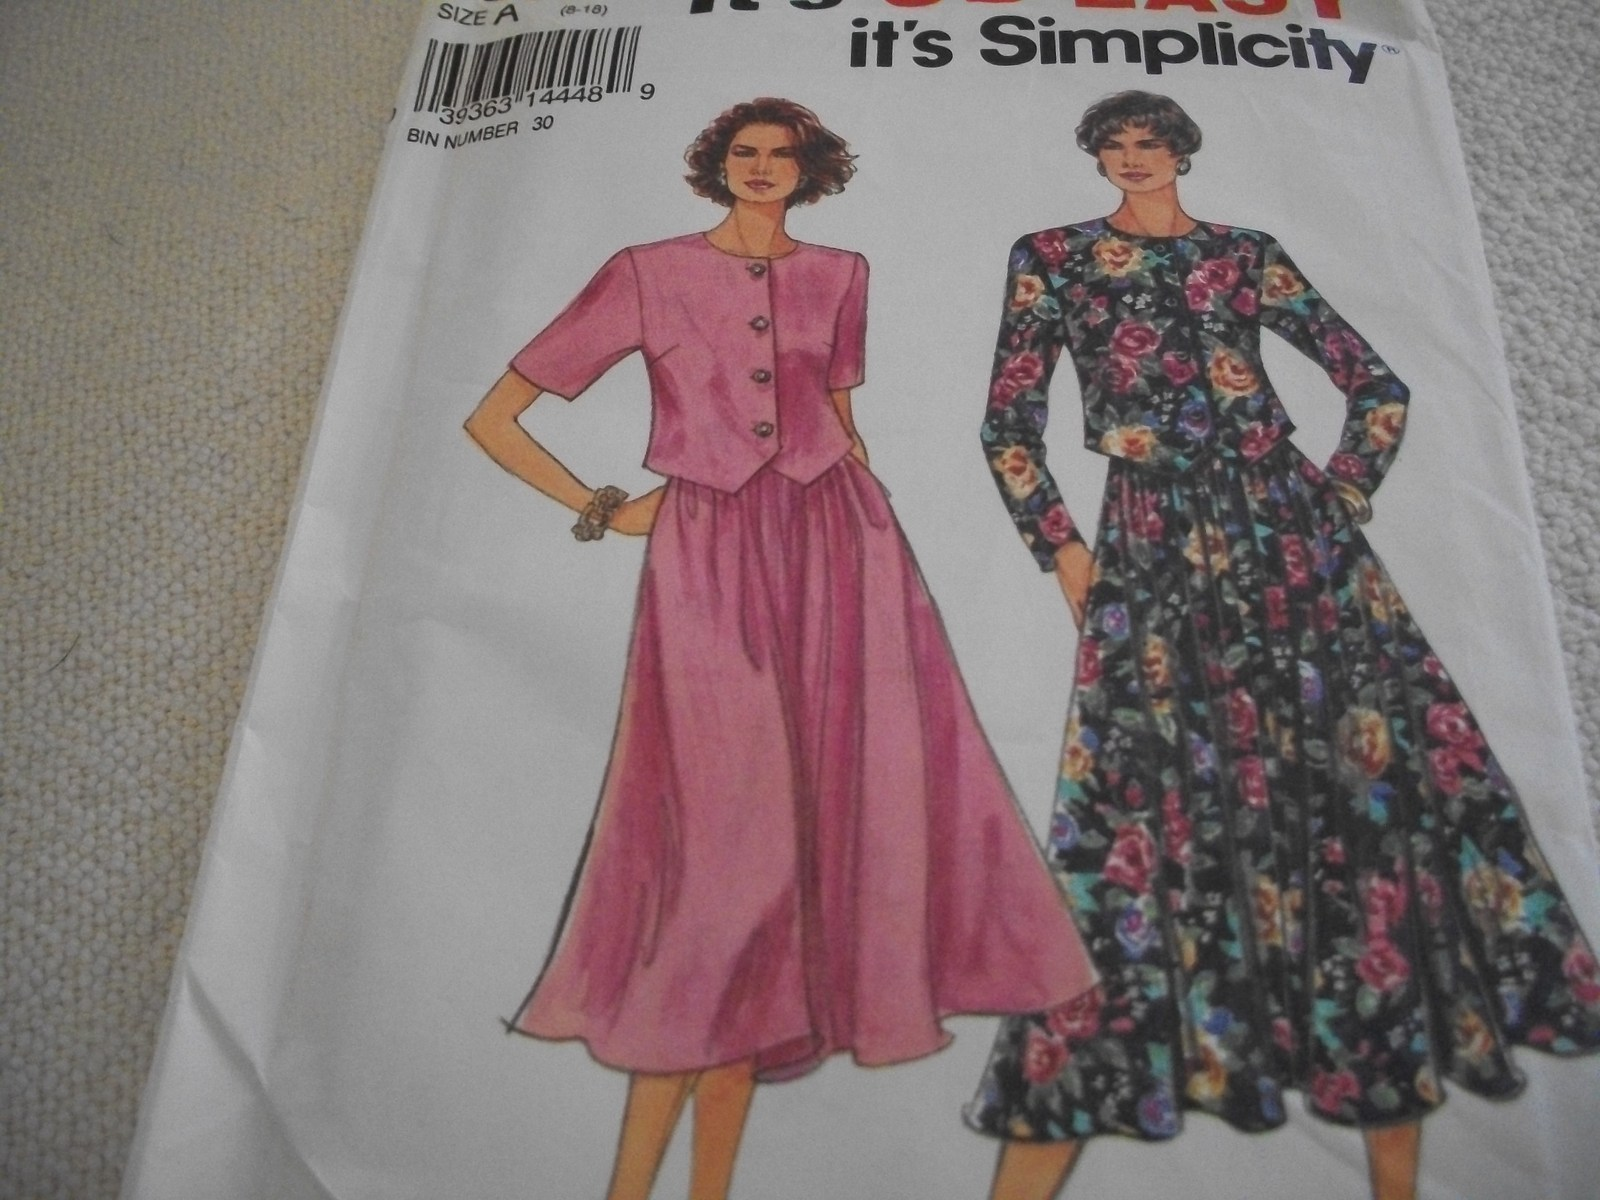 Primary image for Misses' Skirt & Top Pattern Simplicity 8585